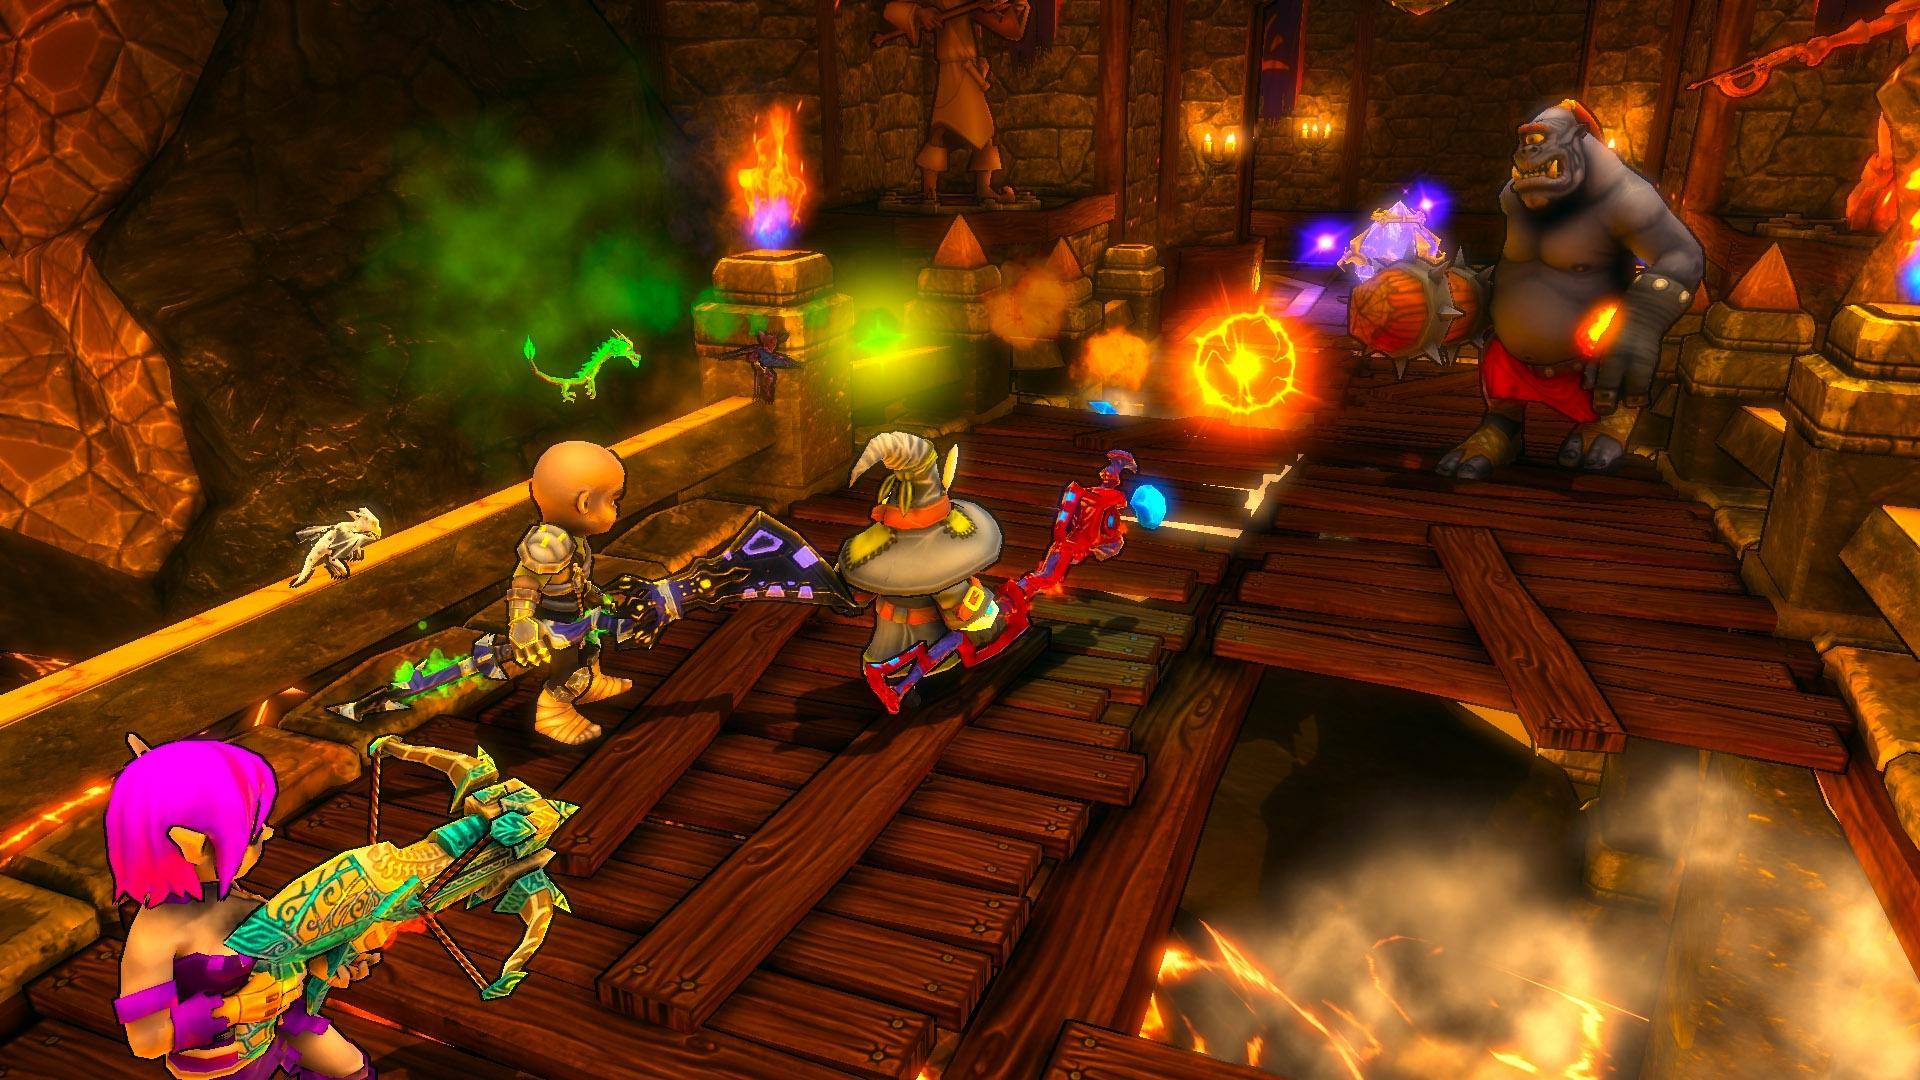 Dungeon defenders screenshots video game news videos and file downloads for pc and console - Dungeon defenders 2 console ...